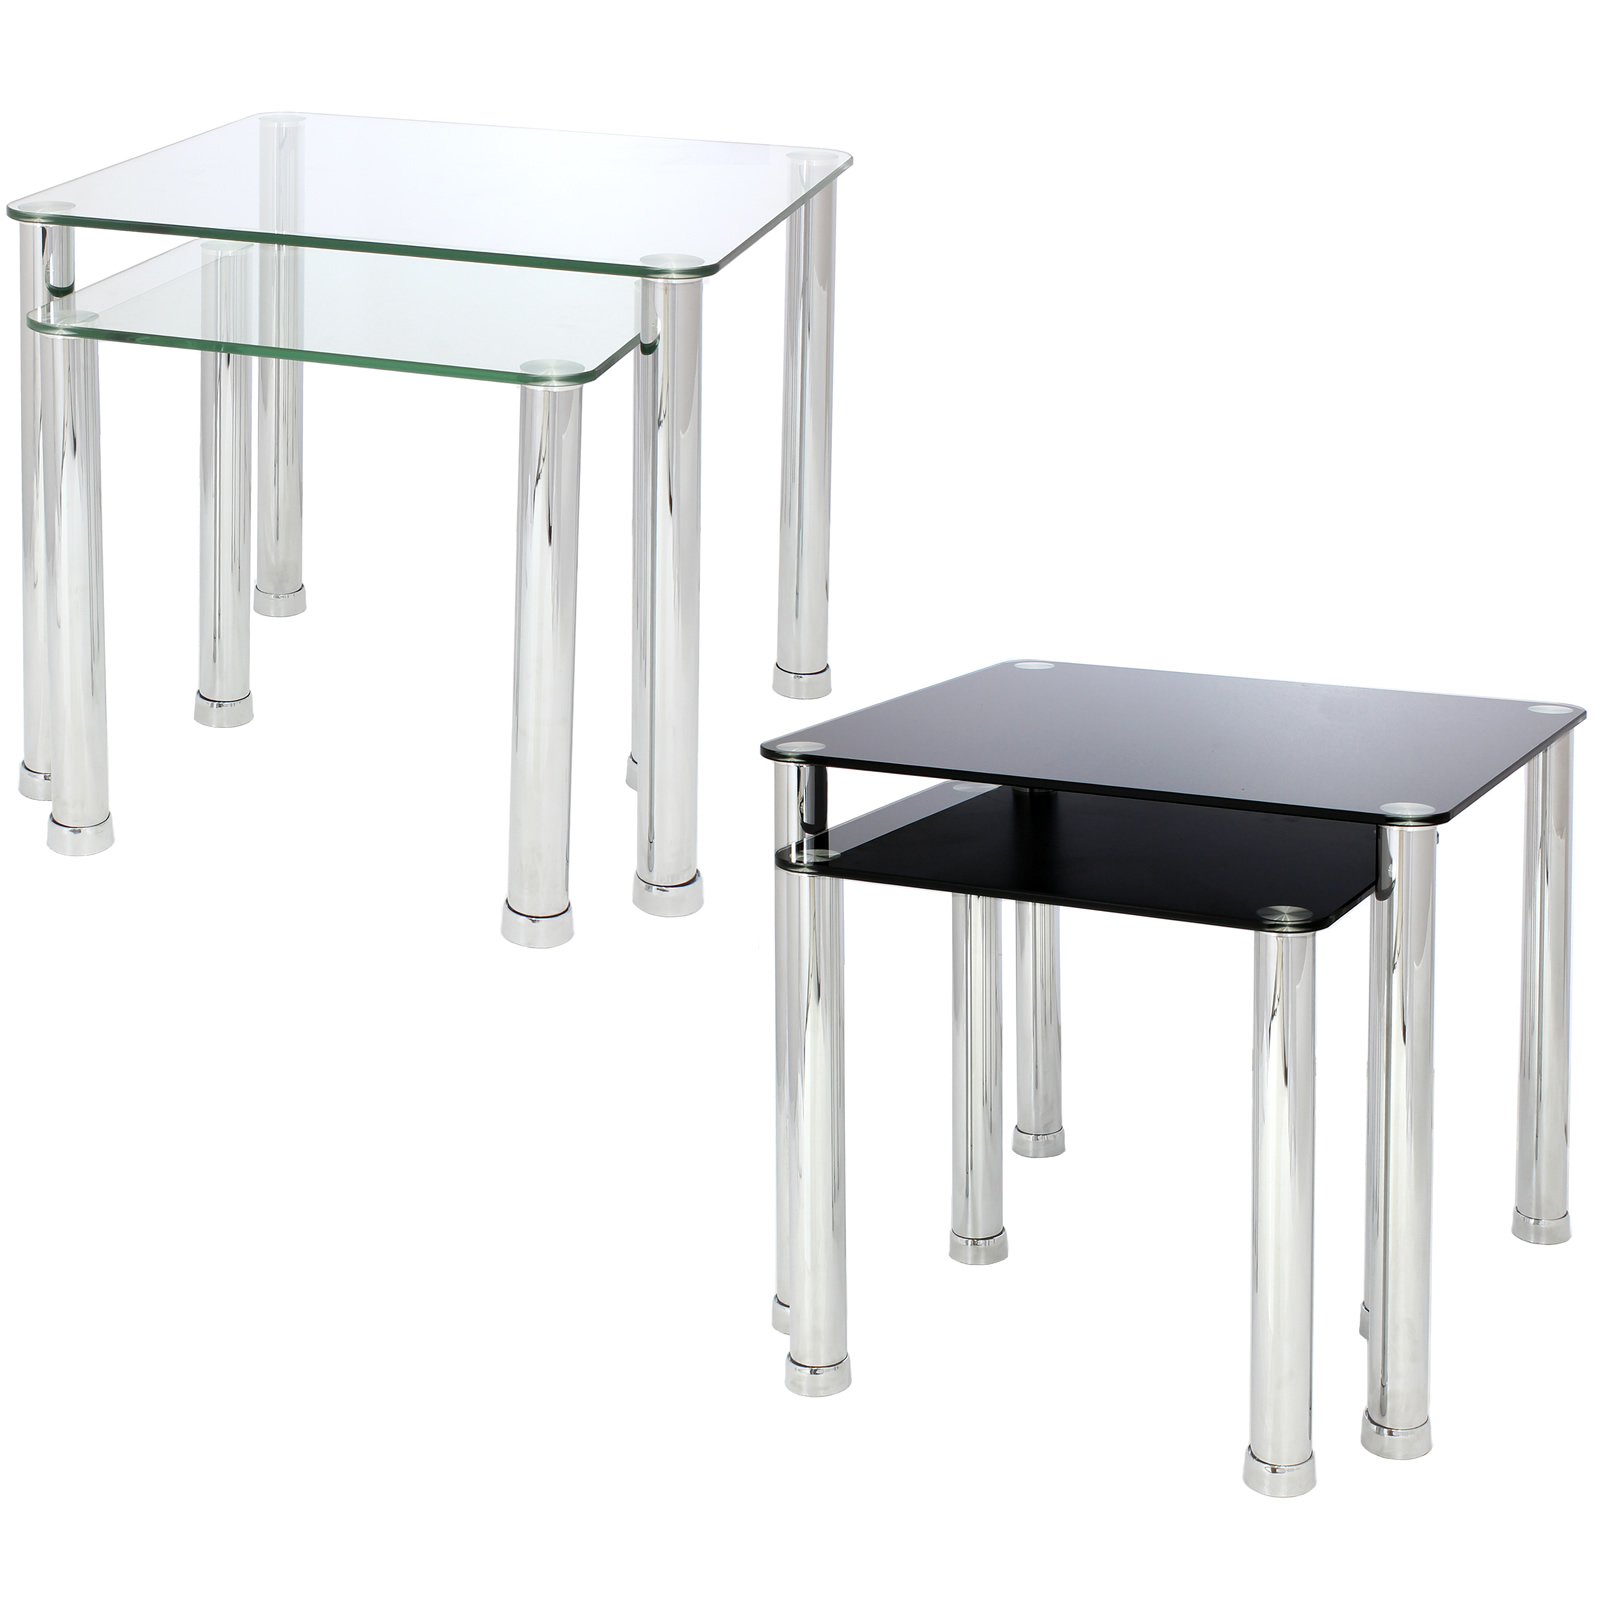 Nest of 2 glass chrome tables home lounge living room set - Glass side tables for living room uk ...